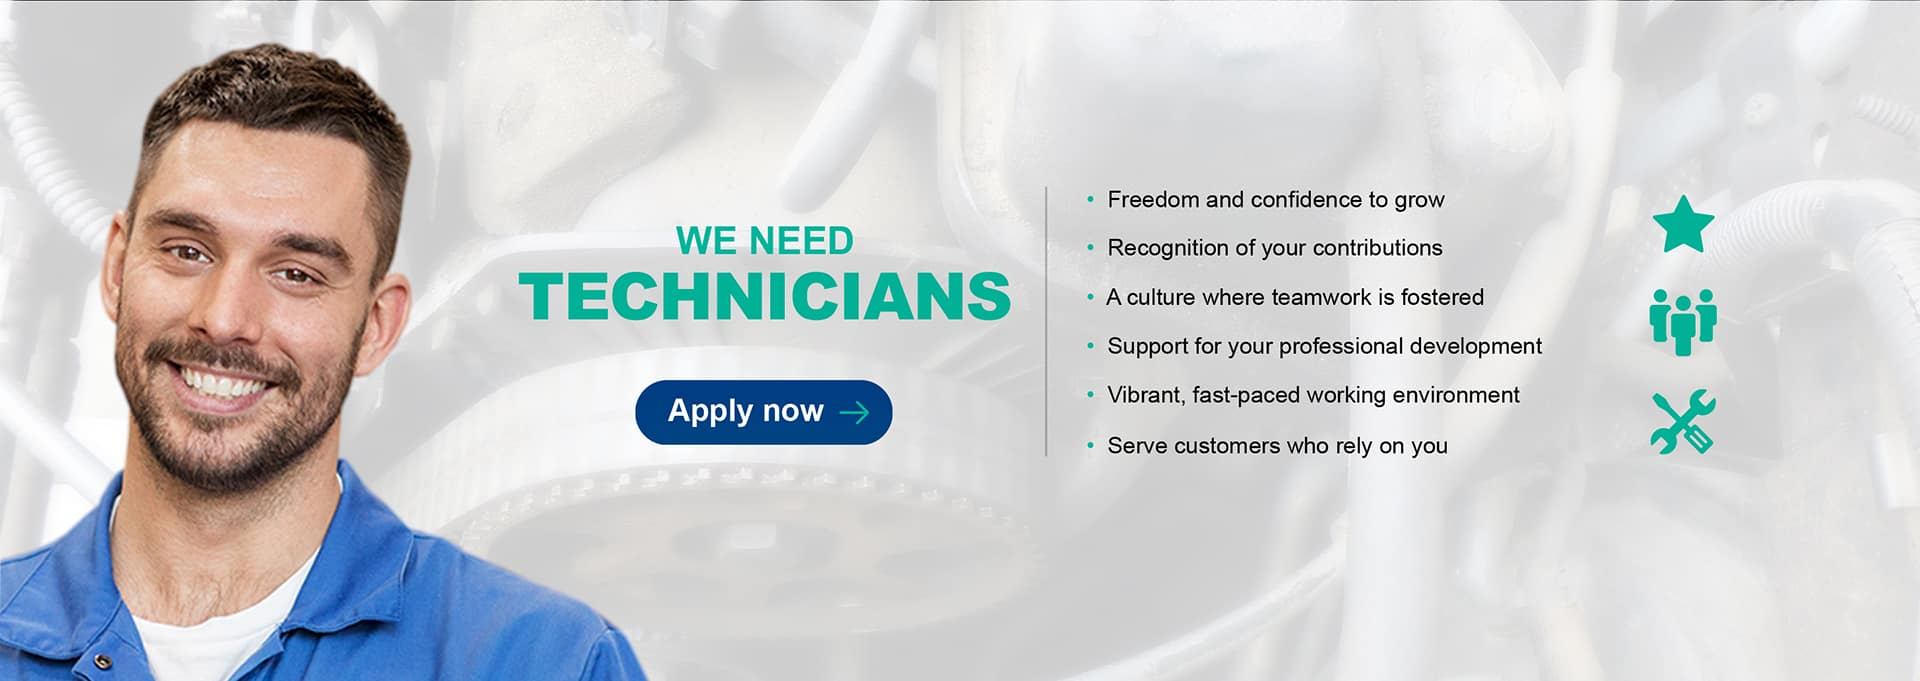 Technician Jobs